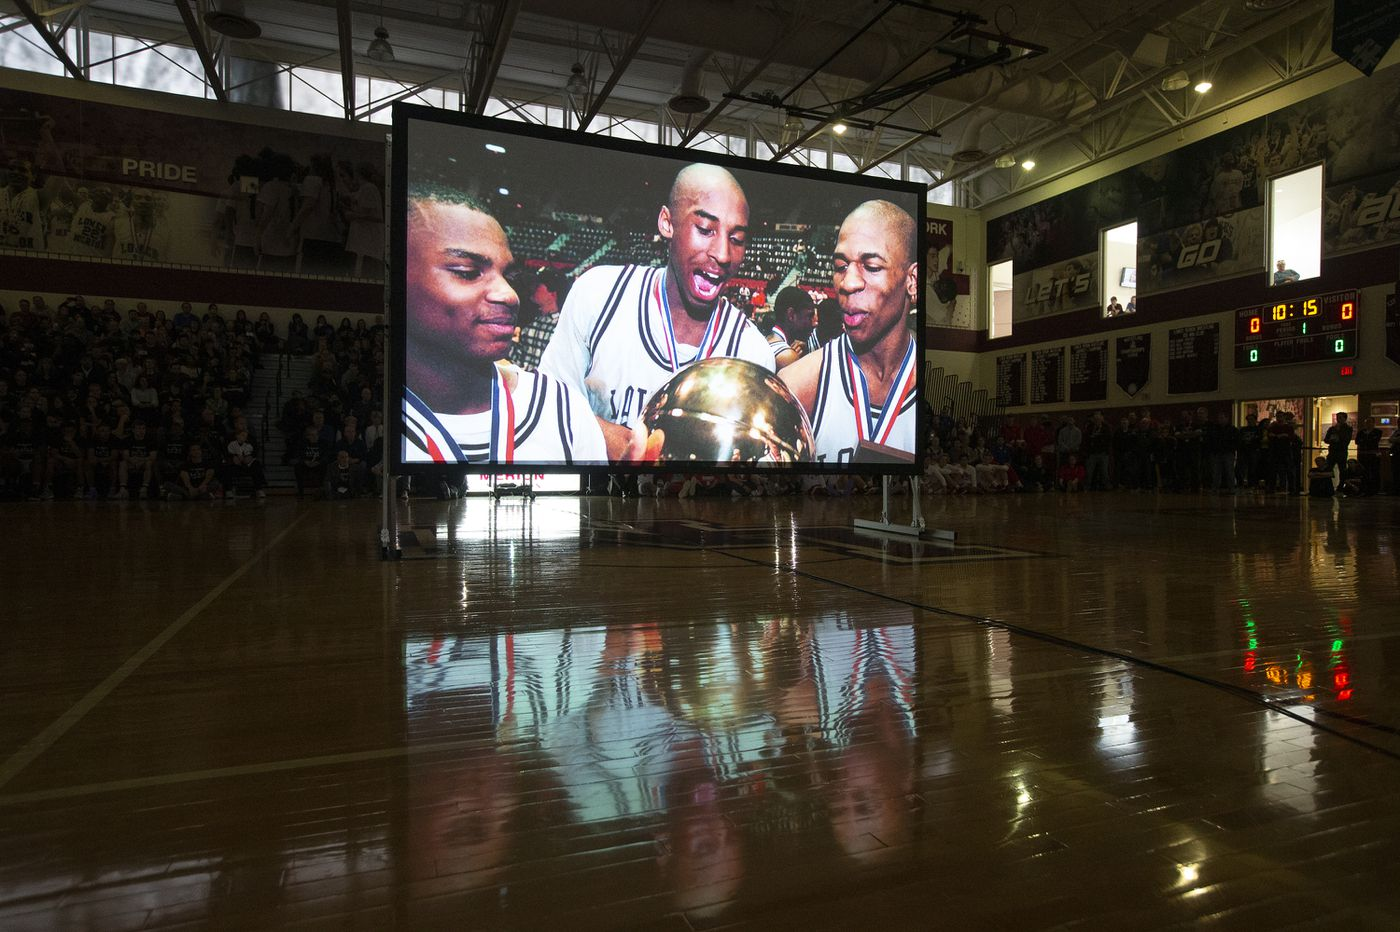 'Aces up': Lower Merion's emotional game-day tribute to Kobe Bryant